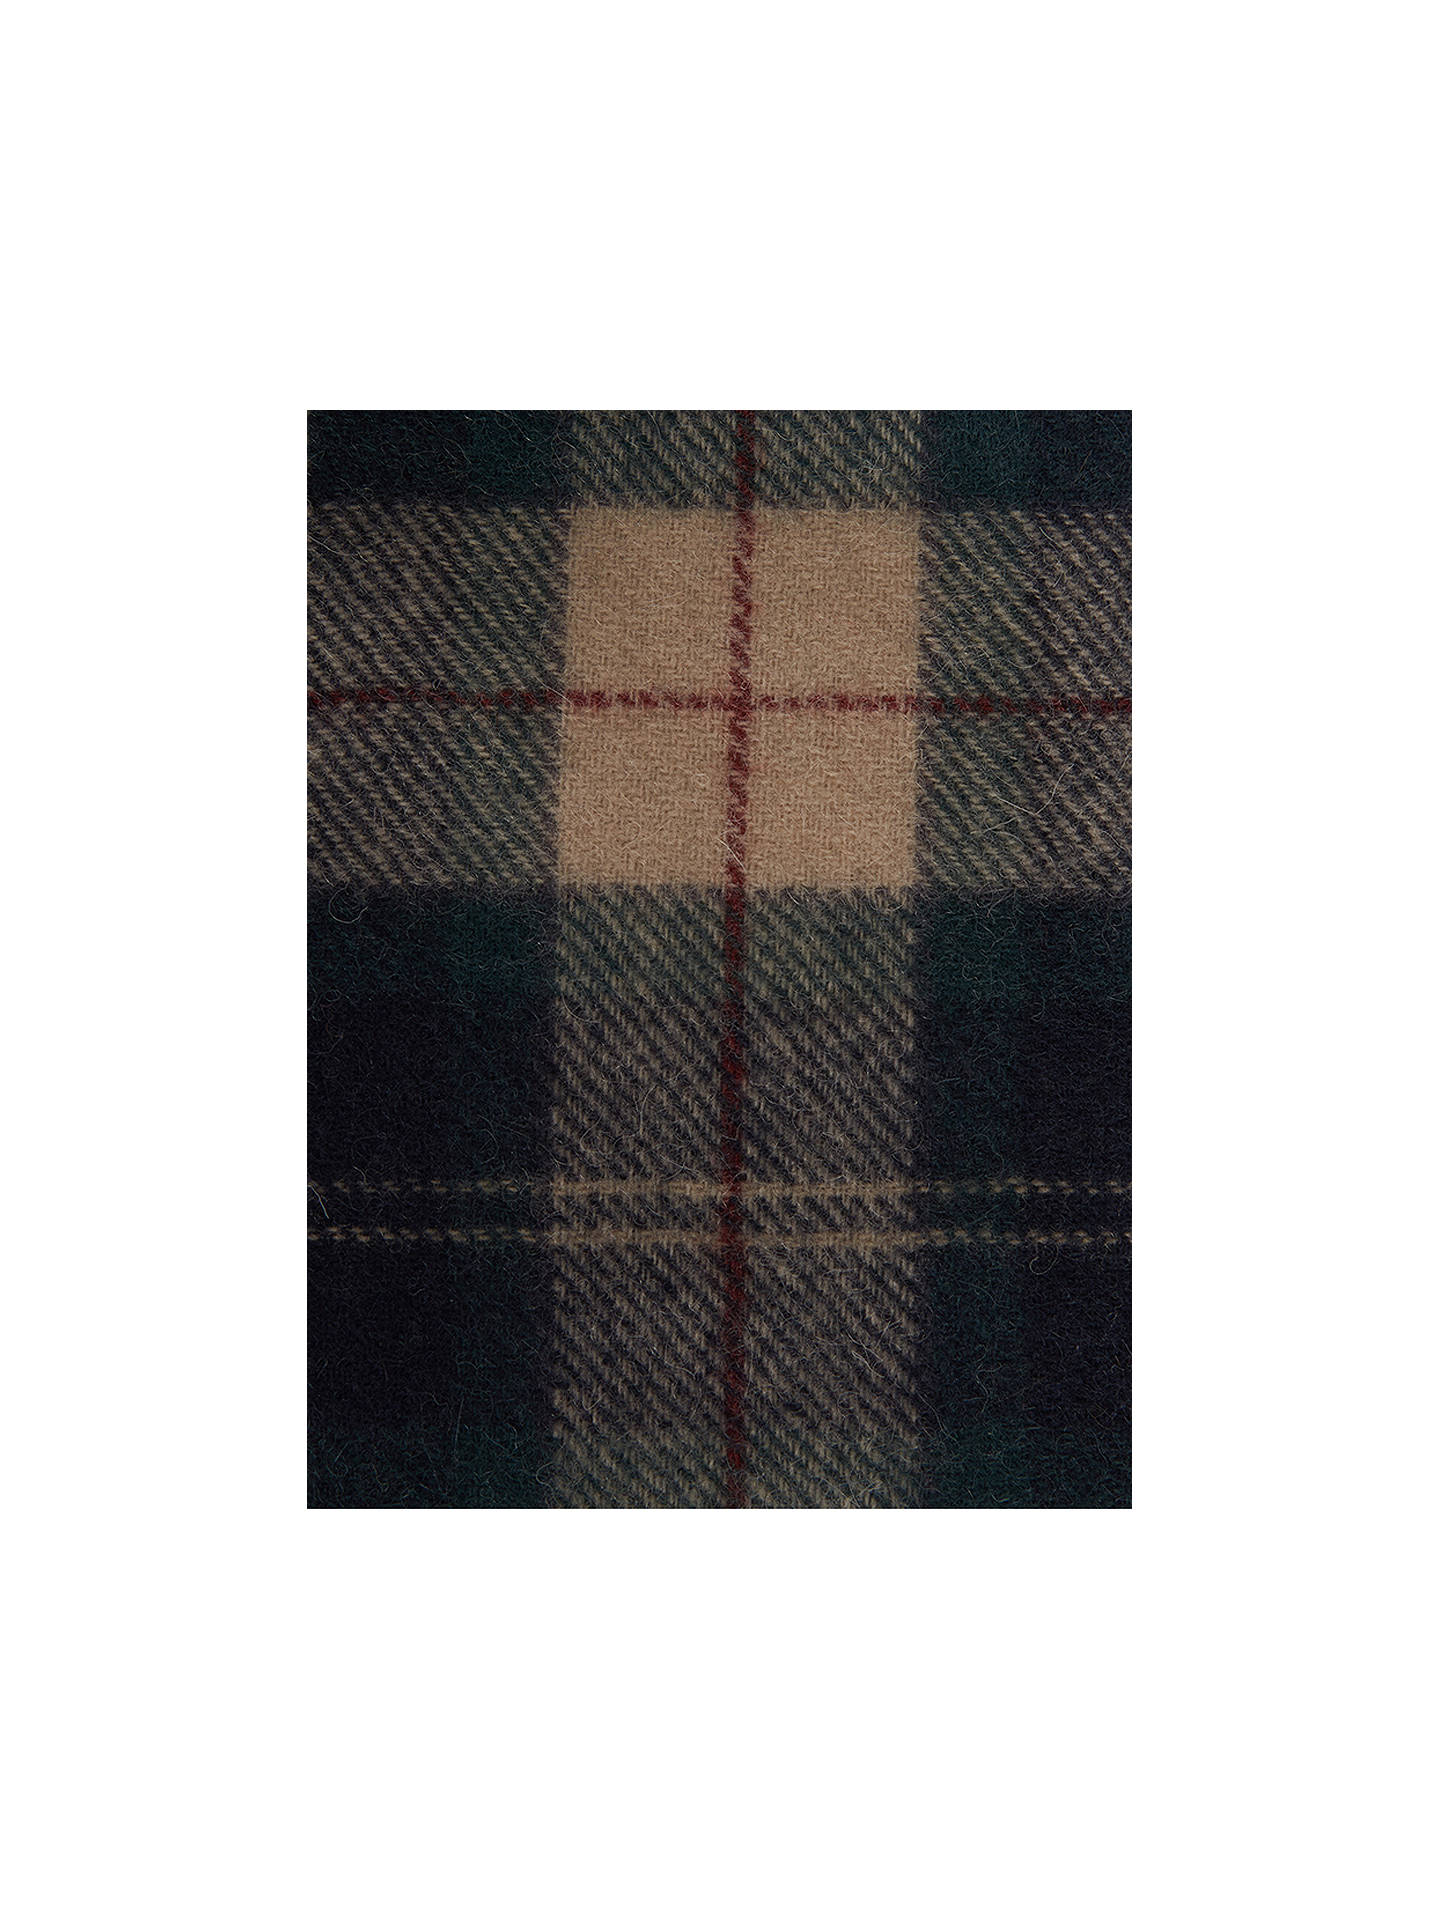 BuyBarbour Land Rover Defender Lambswool Cashmere Tartan Scarf, Multi Online at johnlewis.com